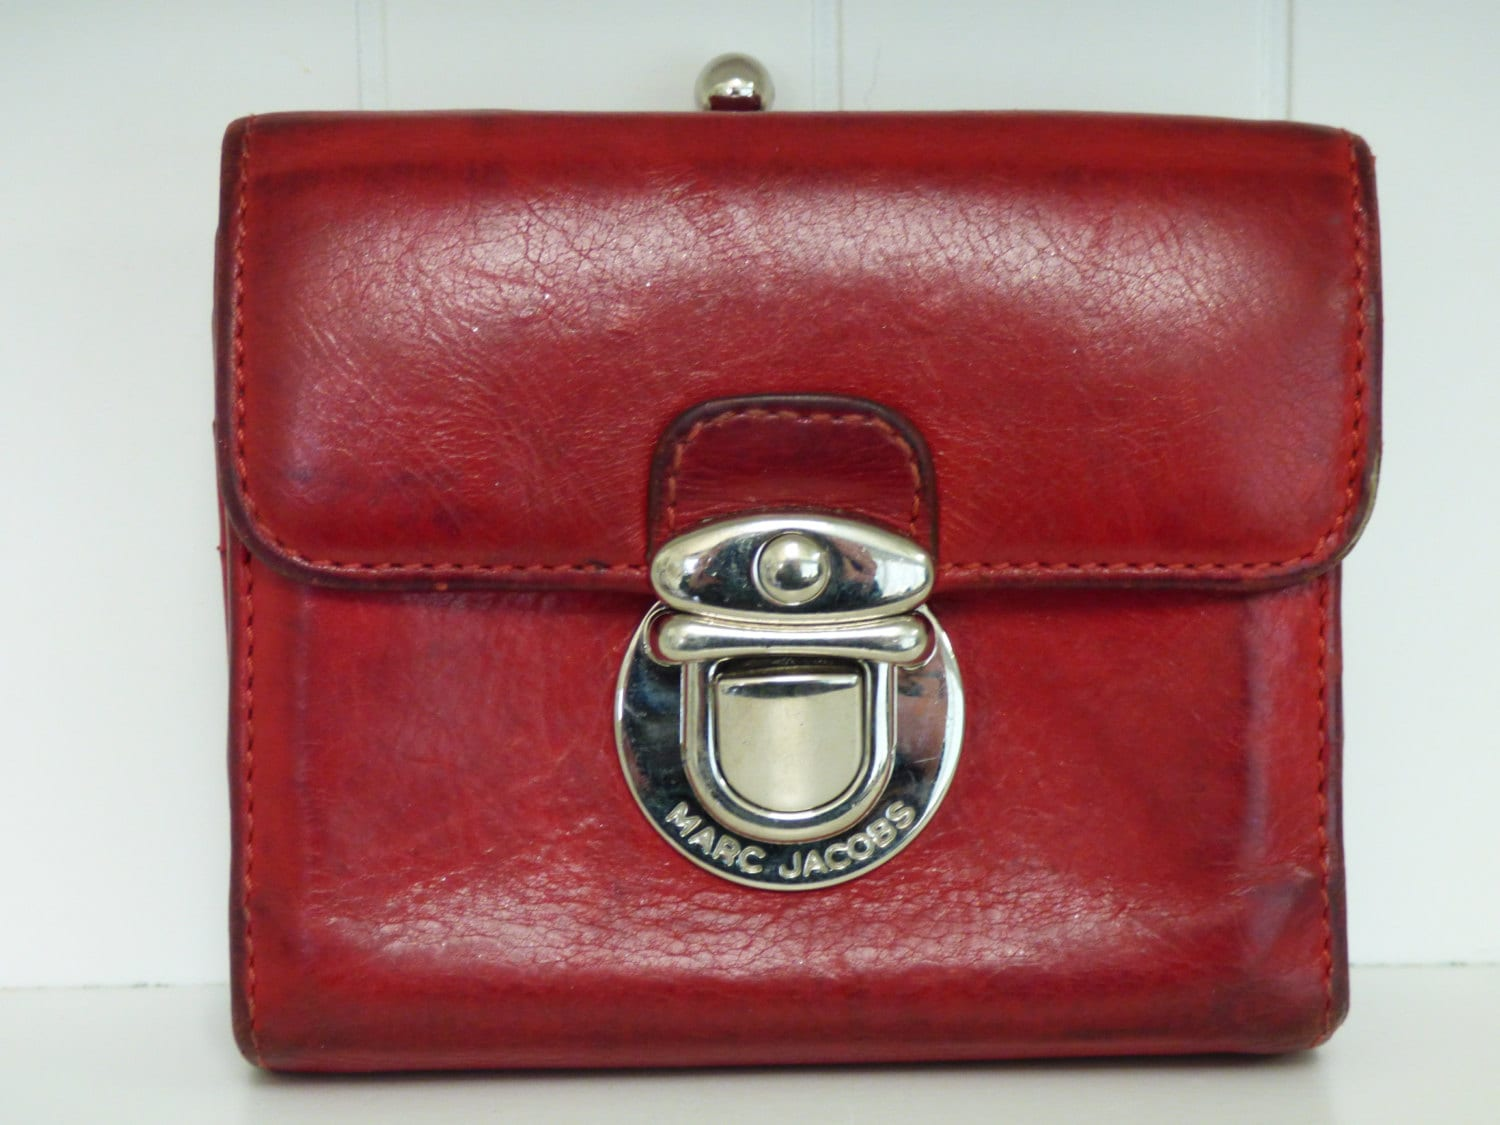 Vintage Marc Jacobs Wallet Red Leather Wallet Silver Metal